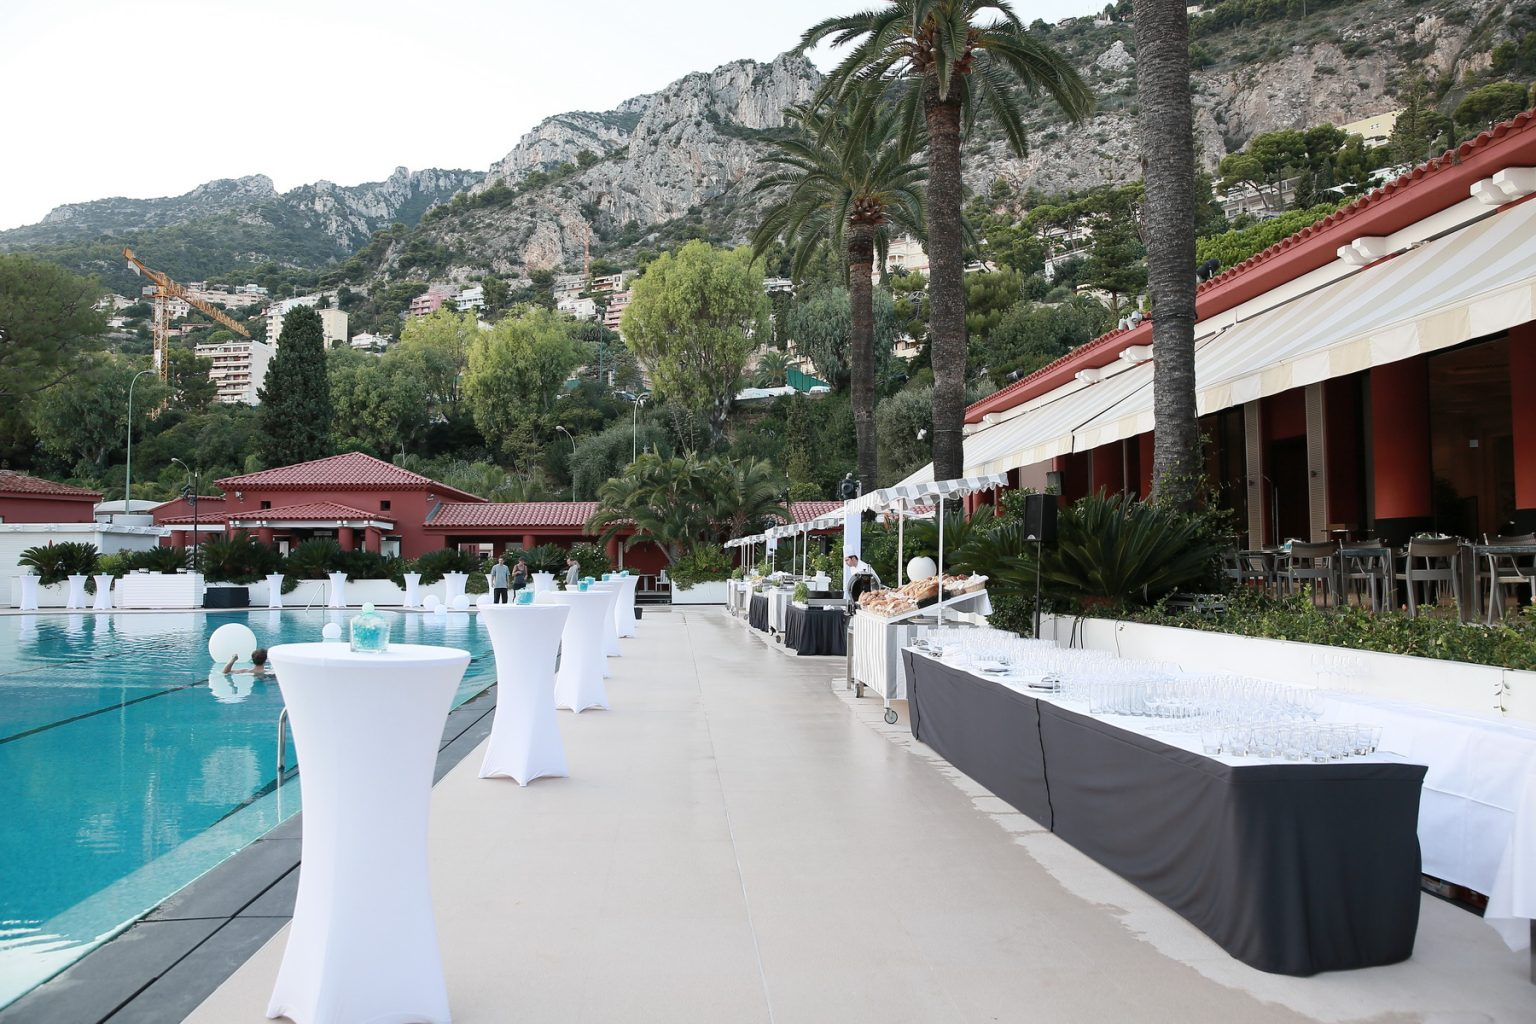 Le Deck Monte Carlo Pool Evening 2 - Le Deck Monte Carlo Pool Evening